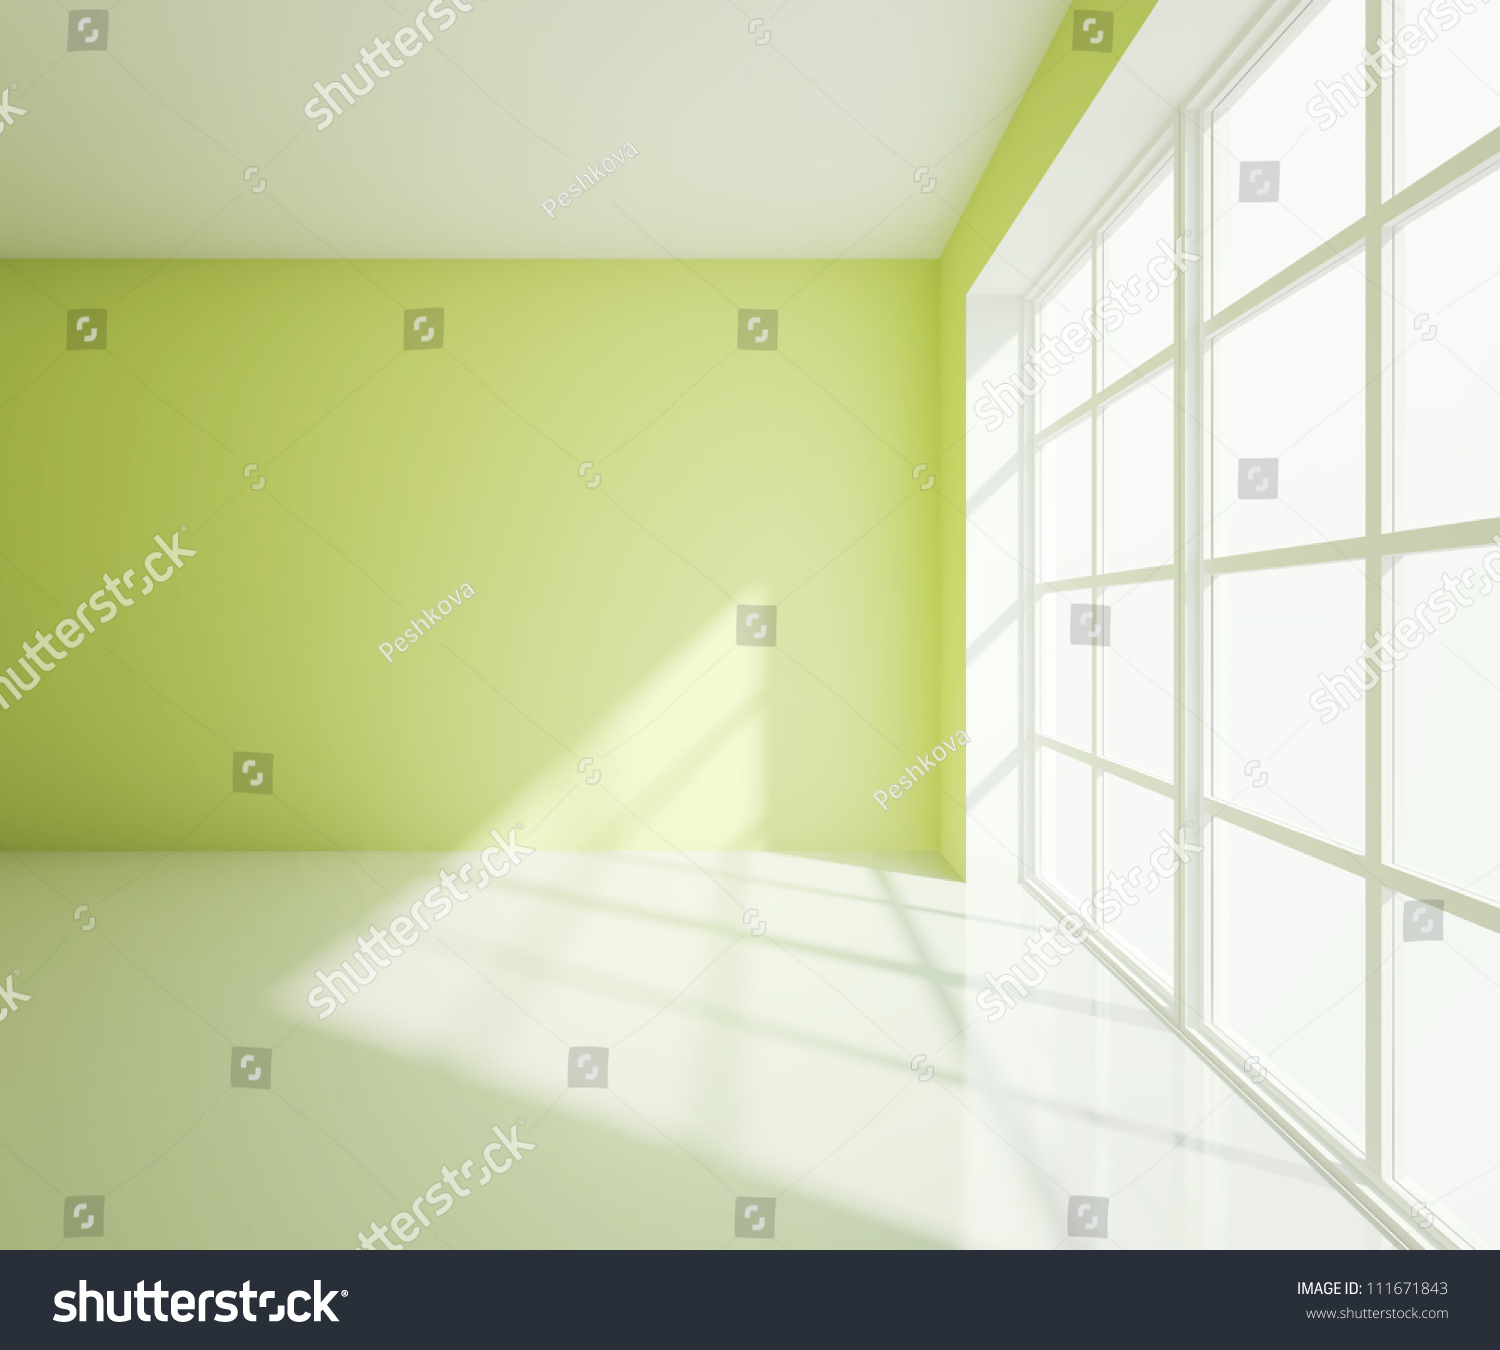 Light green room colors - Empty Light Green Room With White Window